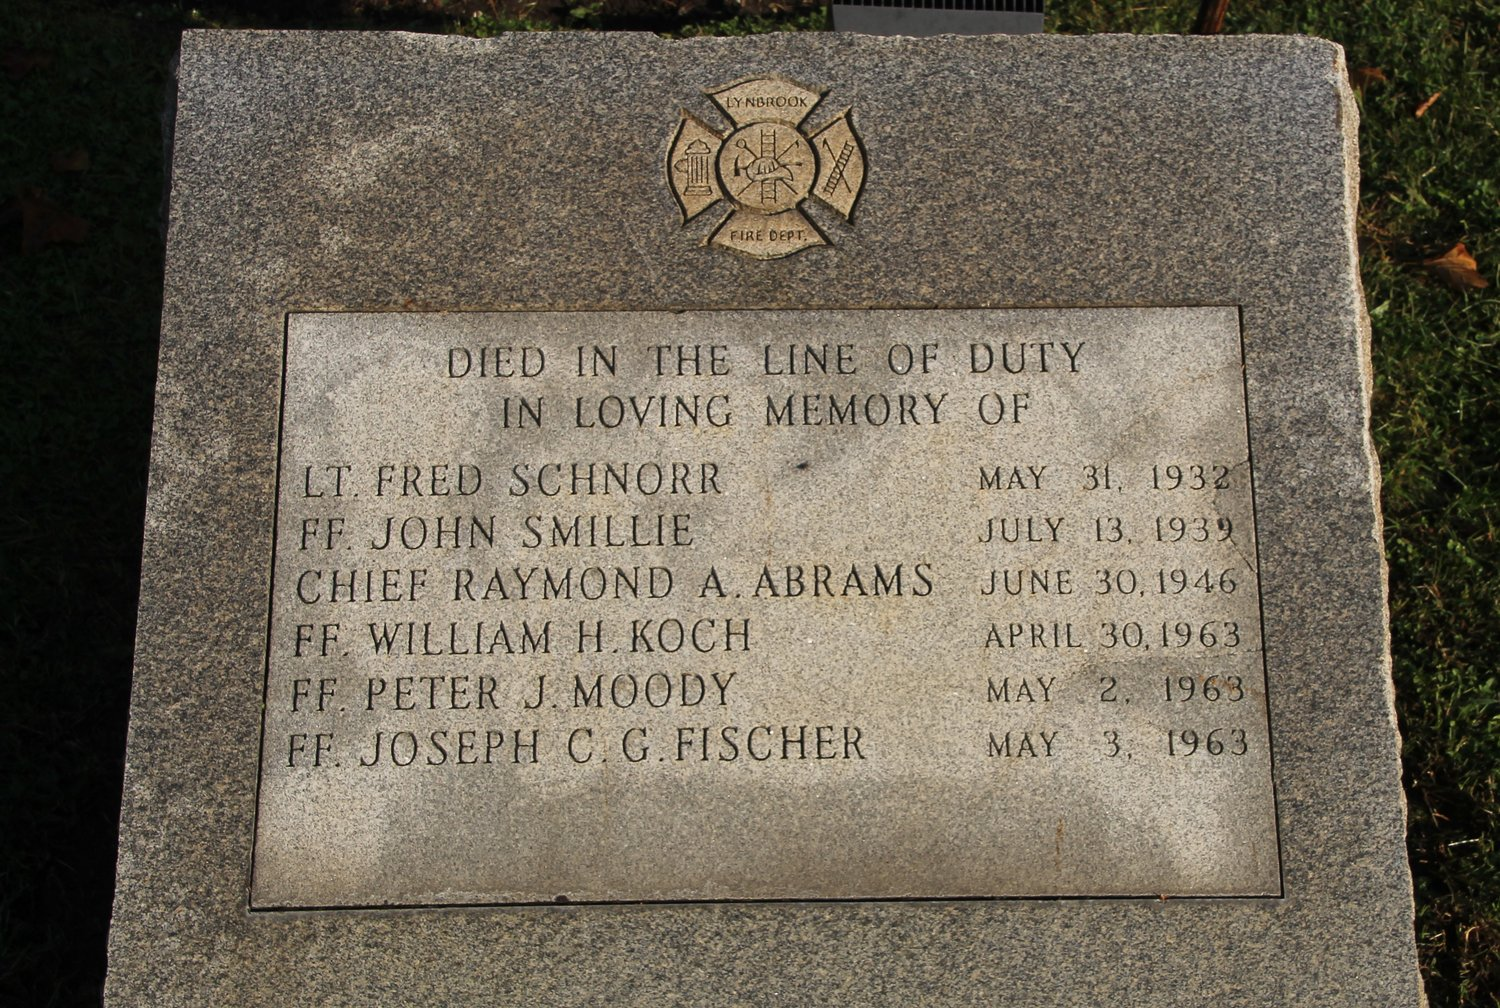 A stone marker on the site of the memorial has the late firefighters' names engraved.